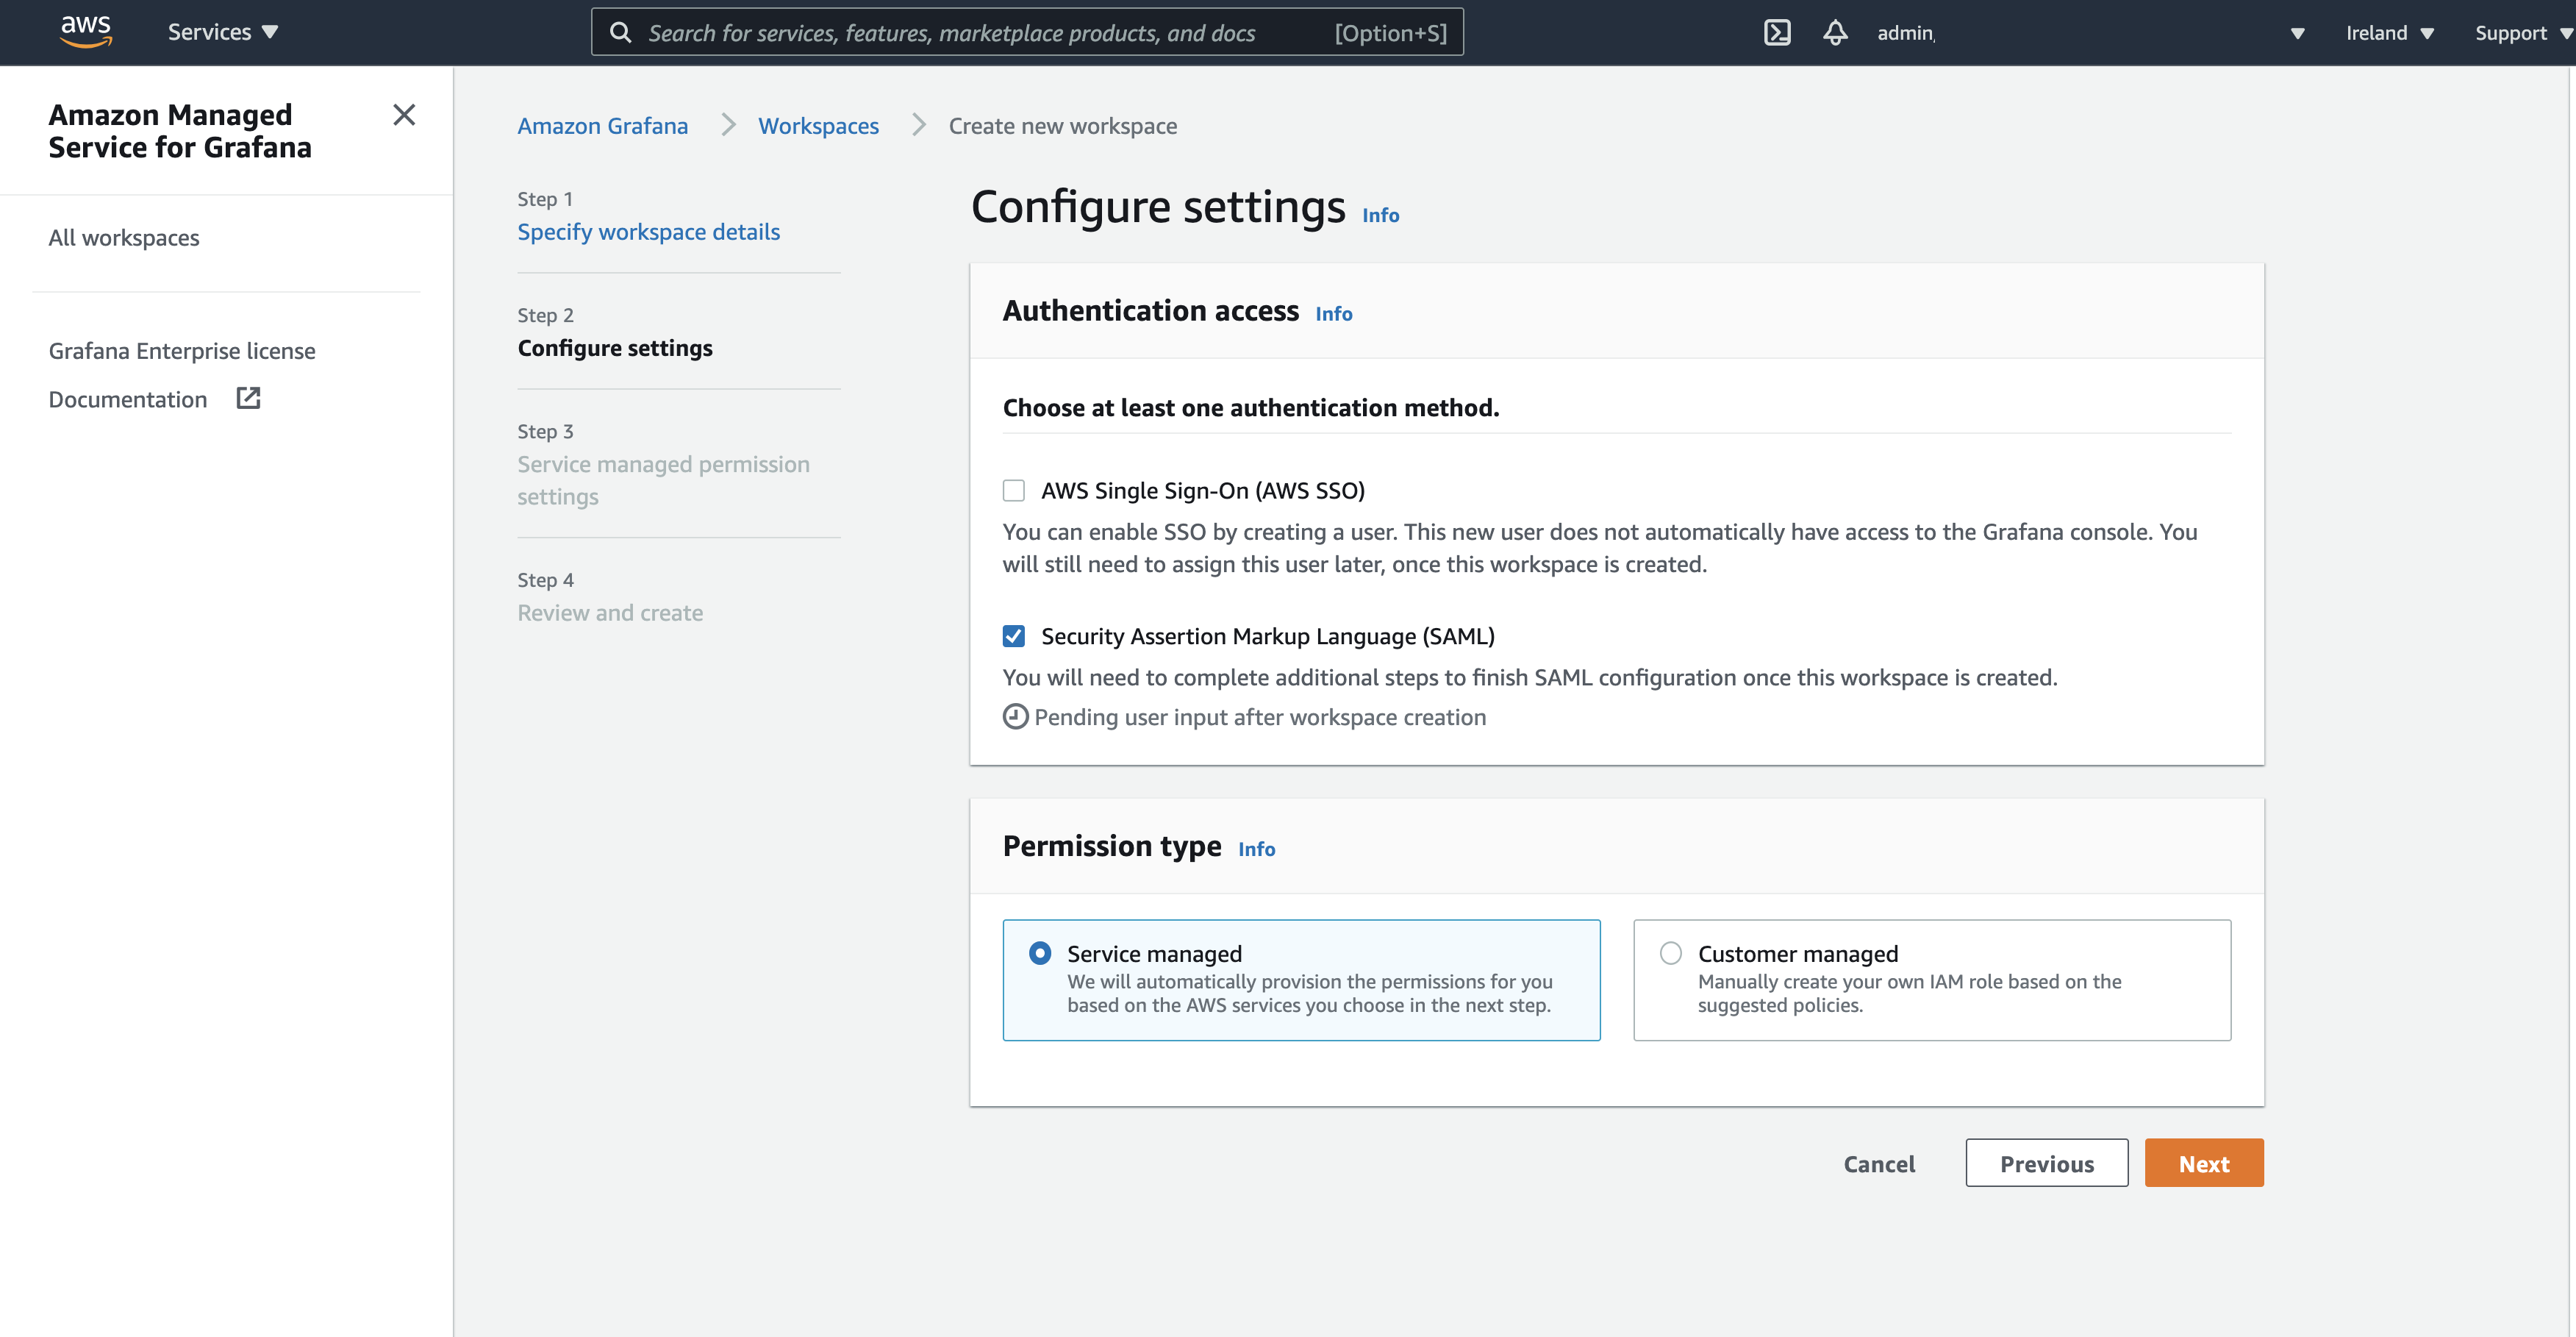 The Configure settings page displays two options for authentication method: AWS SSO and SAML.